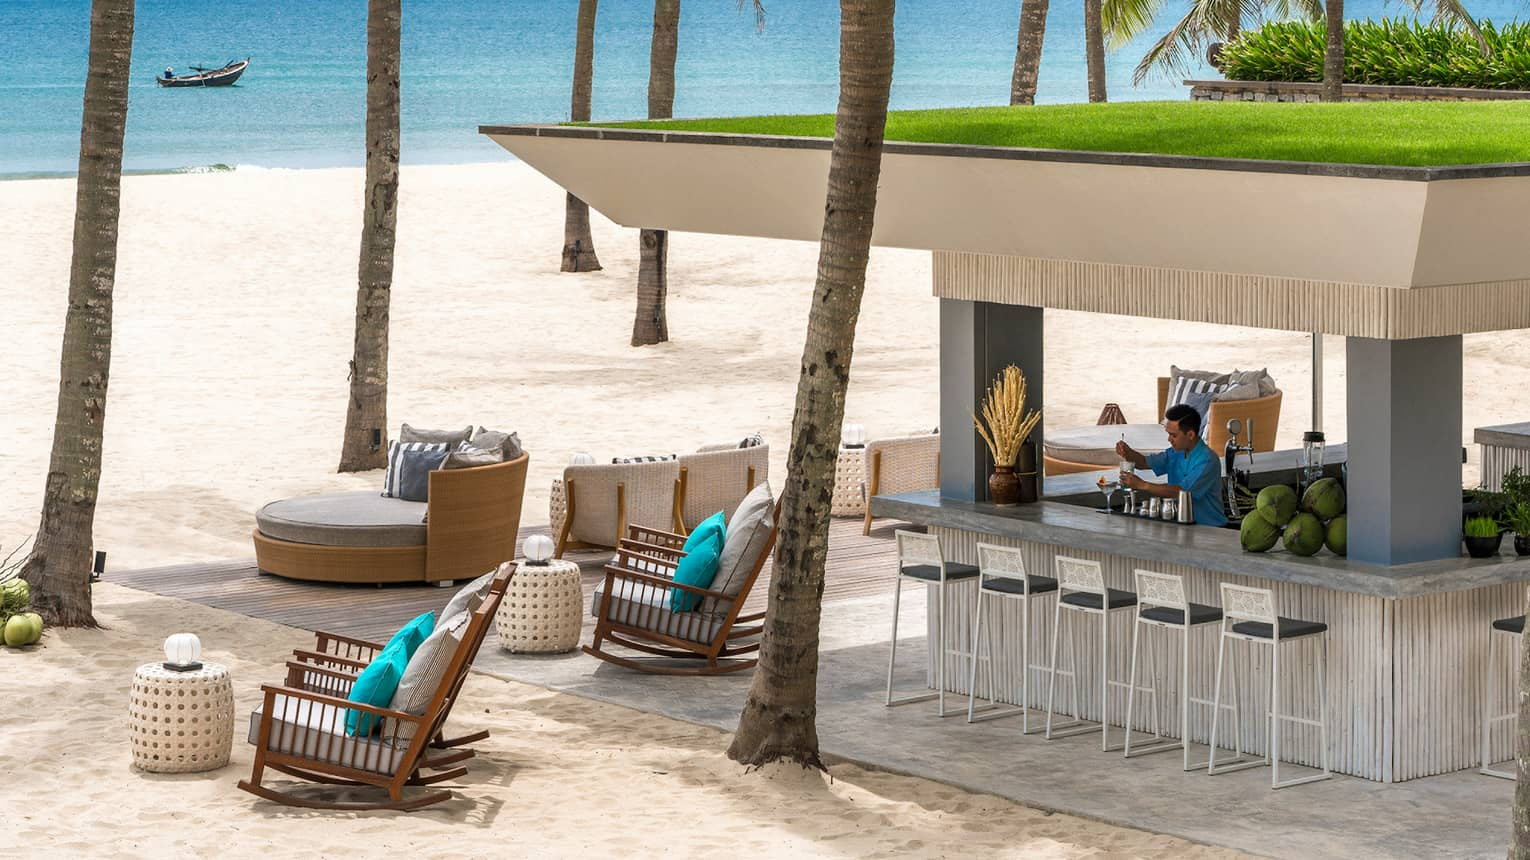 Bartender mixes drink at square stand-alone Beach Bar gazebo under palms on white sand